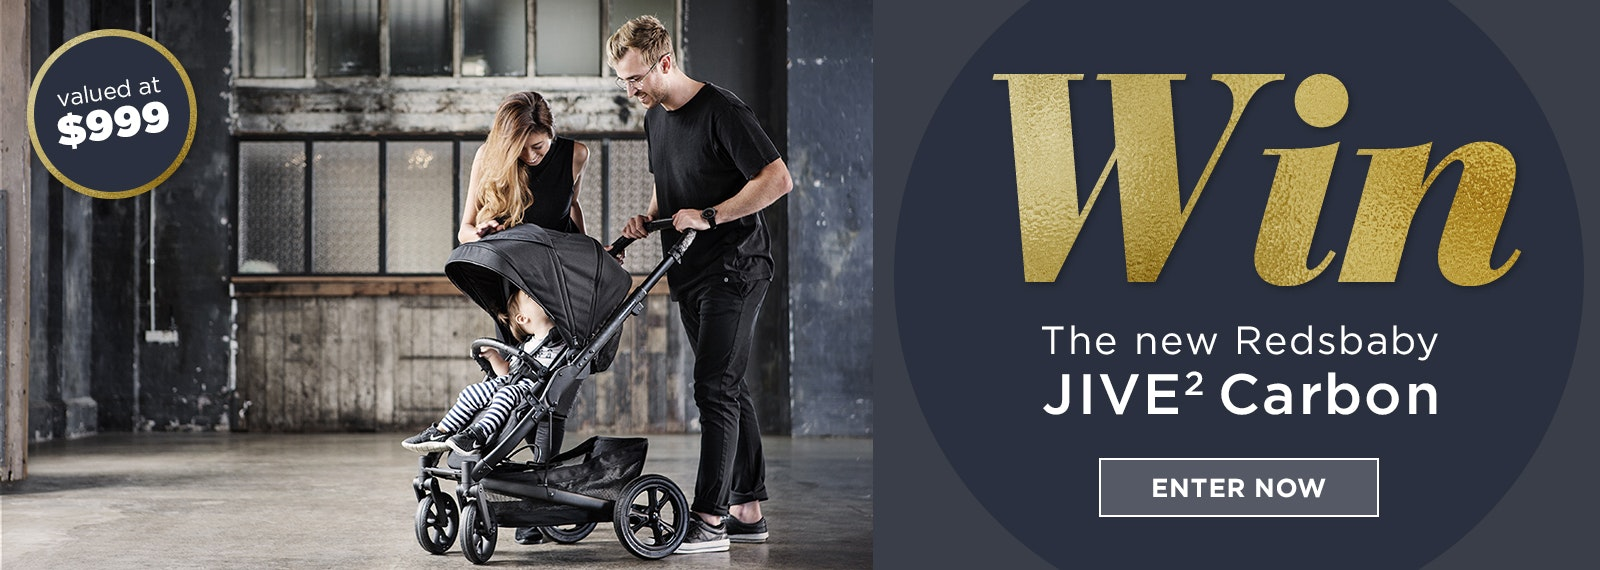 Win the new Limited Edition Redsbaby JIVE² Carbon valued at $999!